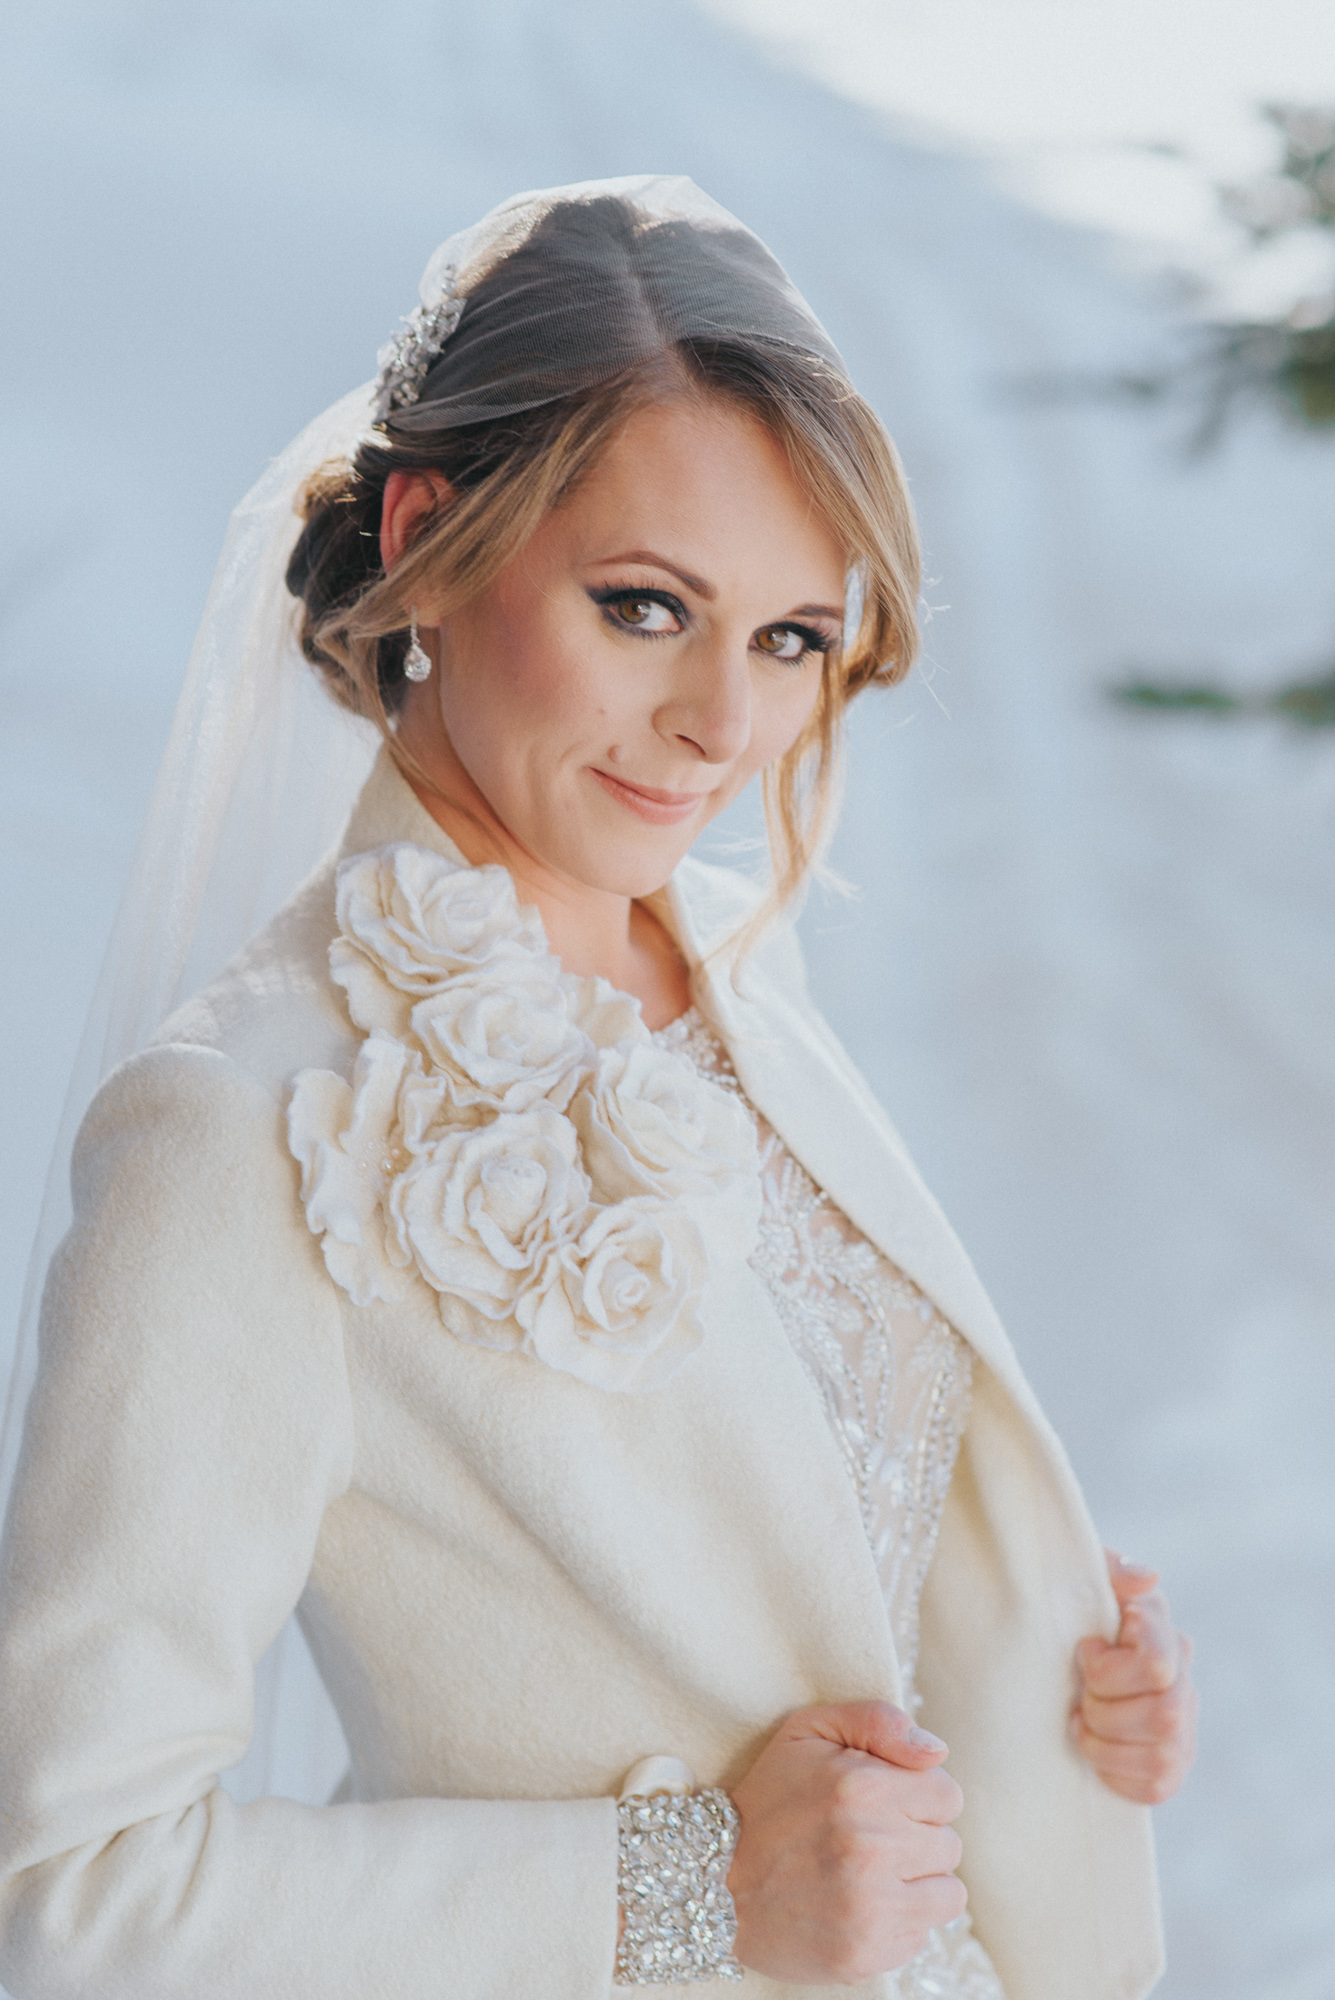 Bride portrait at Viceroy snowmass near Aspen